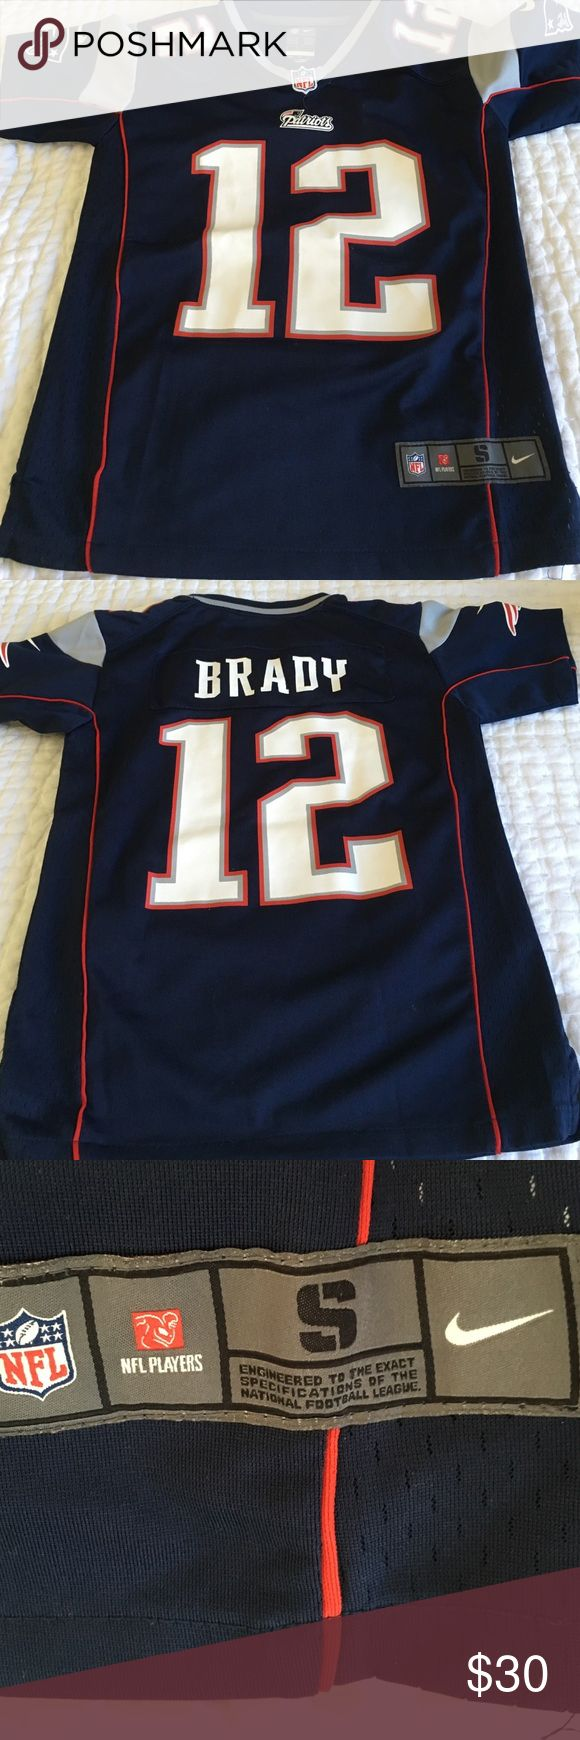 Tom Brady authentic Nike nfl youth jersey Navy blue Tom Brady nfl Nike authentic jersey youth size small fits 8-10. Nike Shirts & Tops